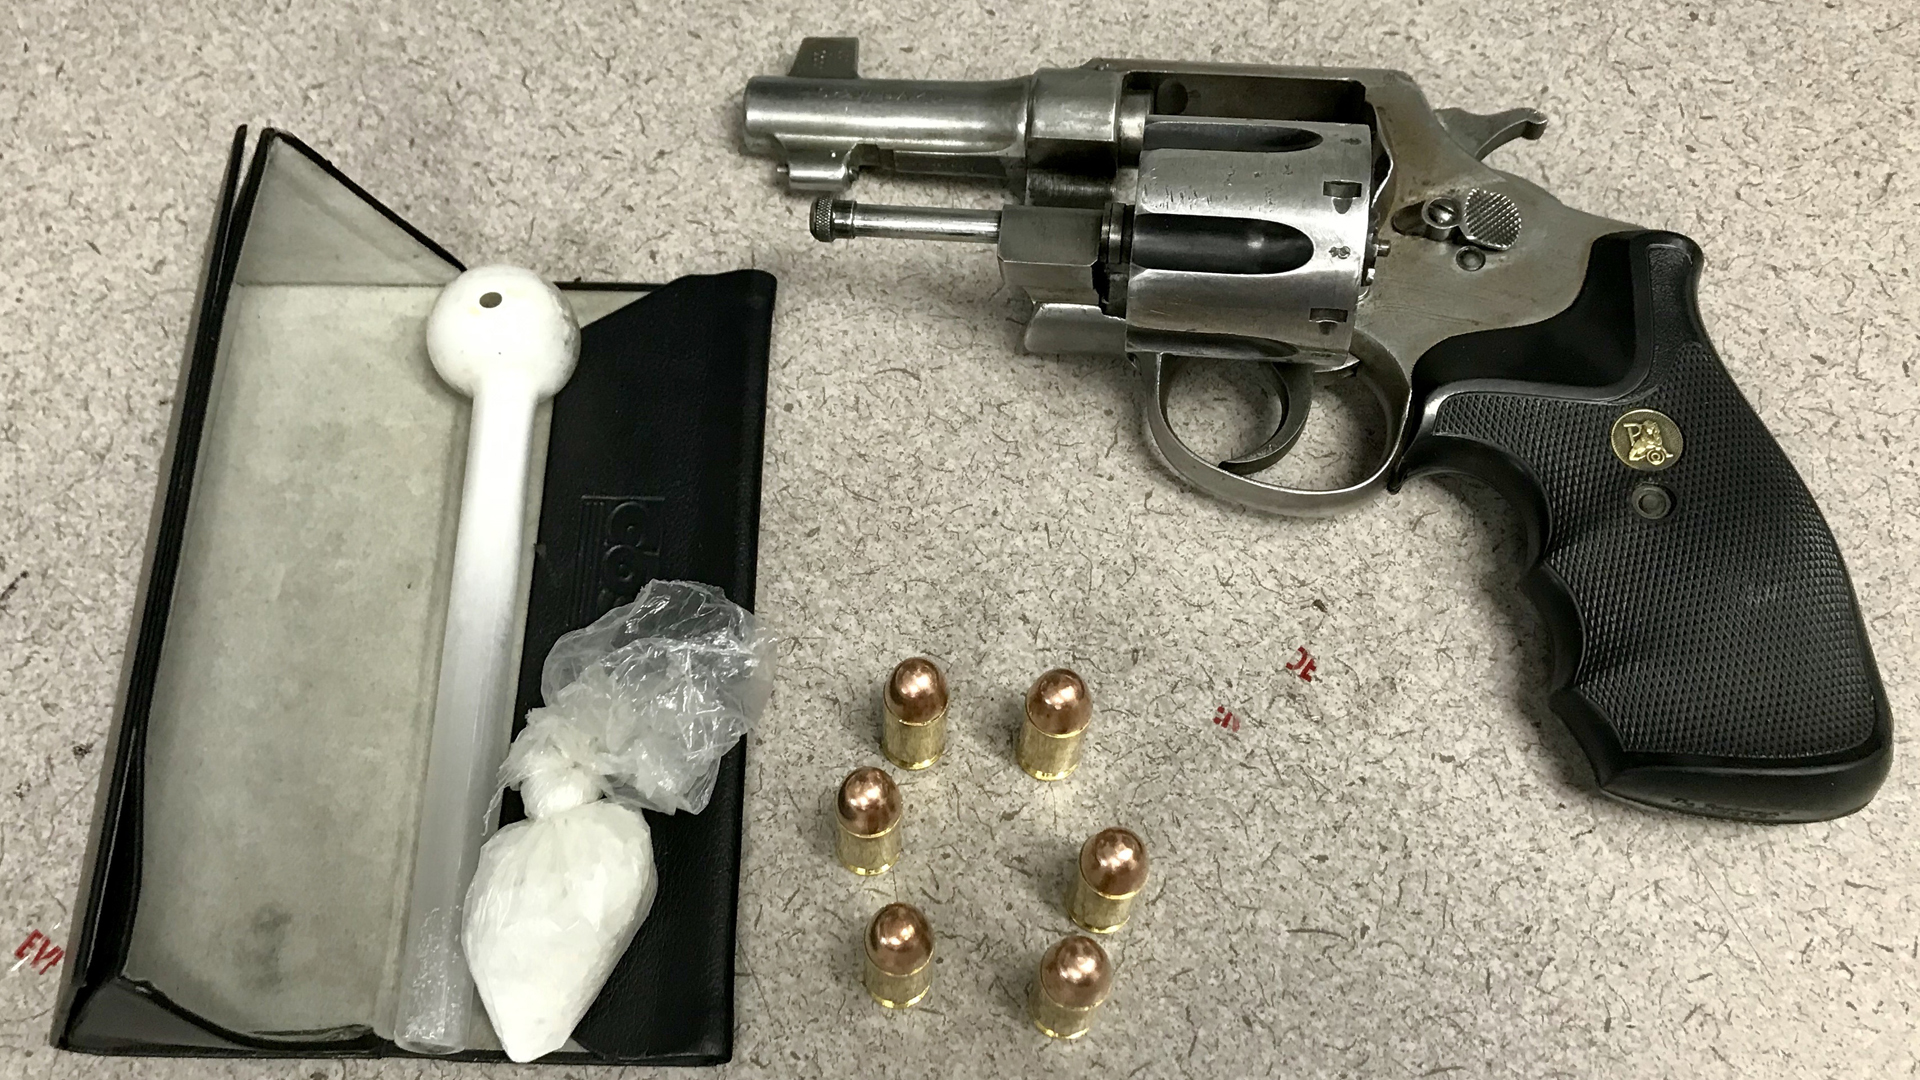 Victorville police released this photo of a handgun and suspected drugs recovered during a traffic stop on July 10, 2019.